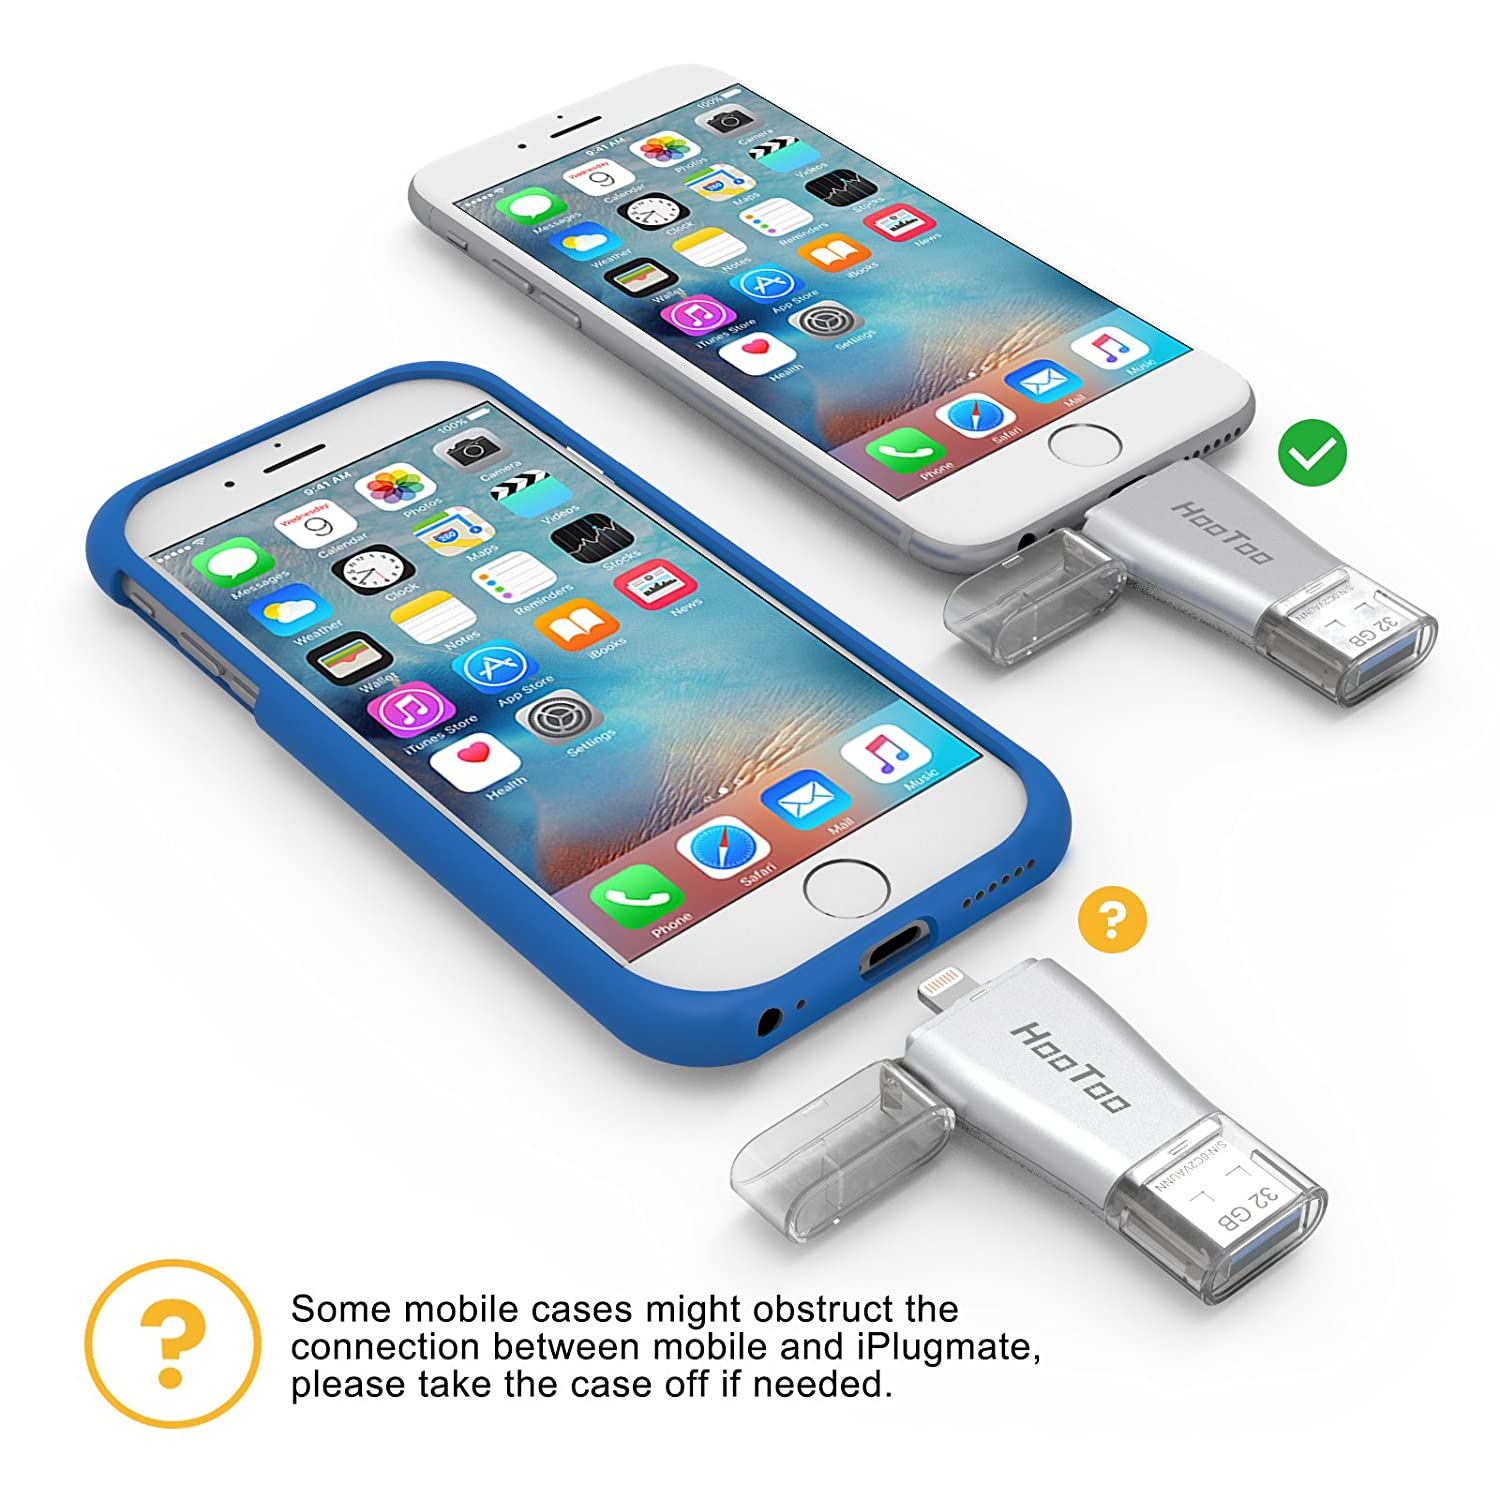 Flash Drive iPhone HooToo connettore Lightning e USB 3.0, 32 GB per Dispositivi iPhone, iPad, MacBook, Computer, Laptop